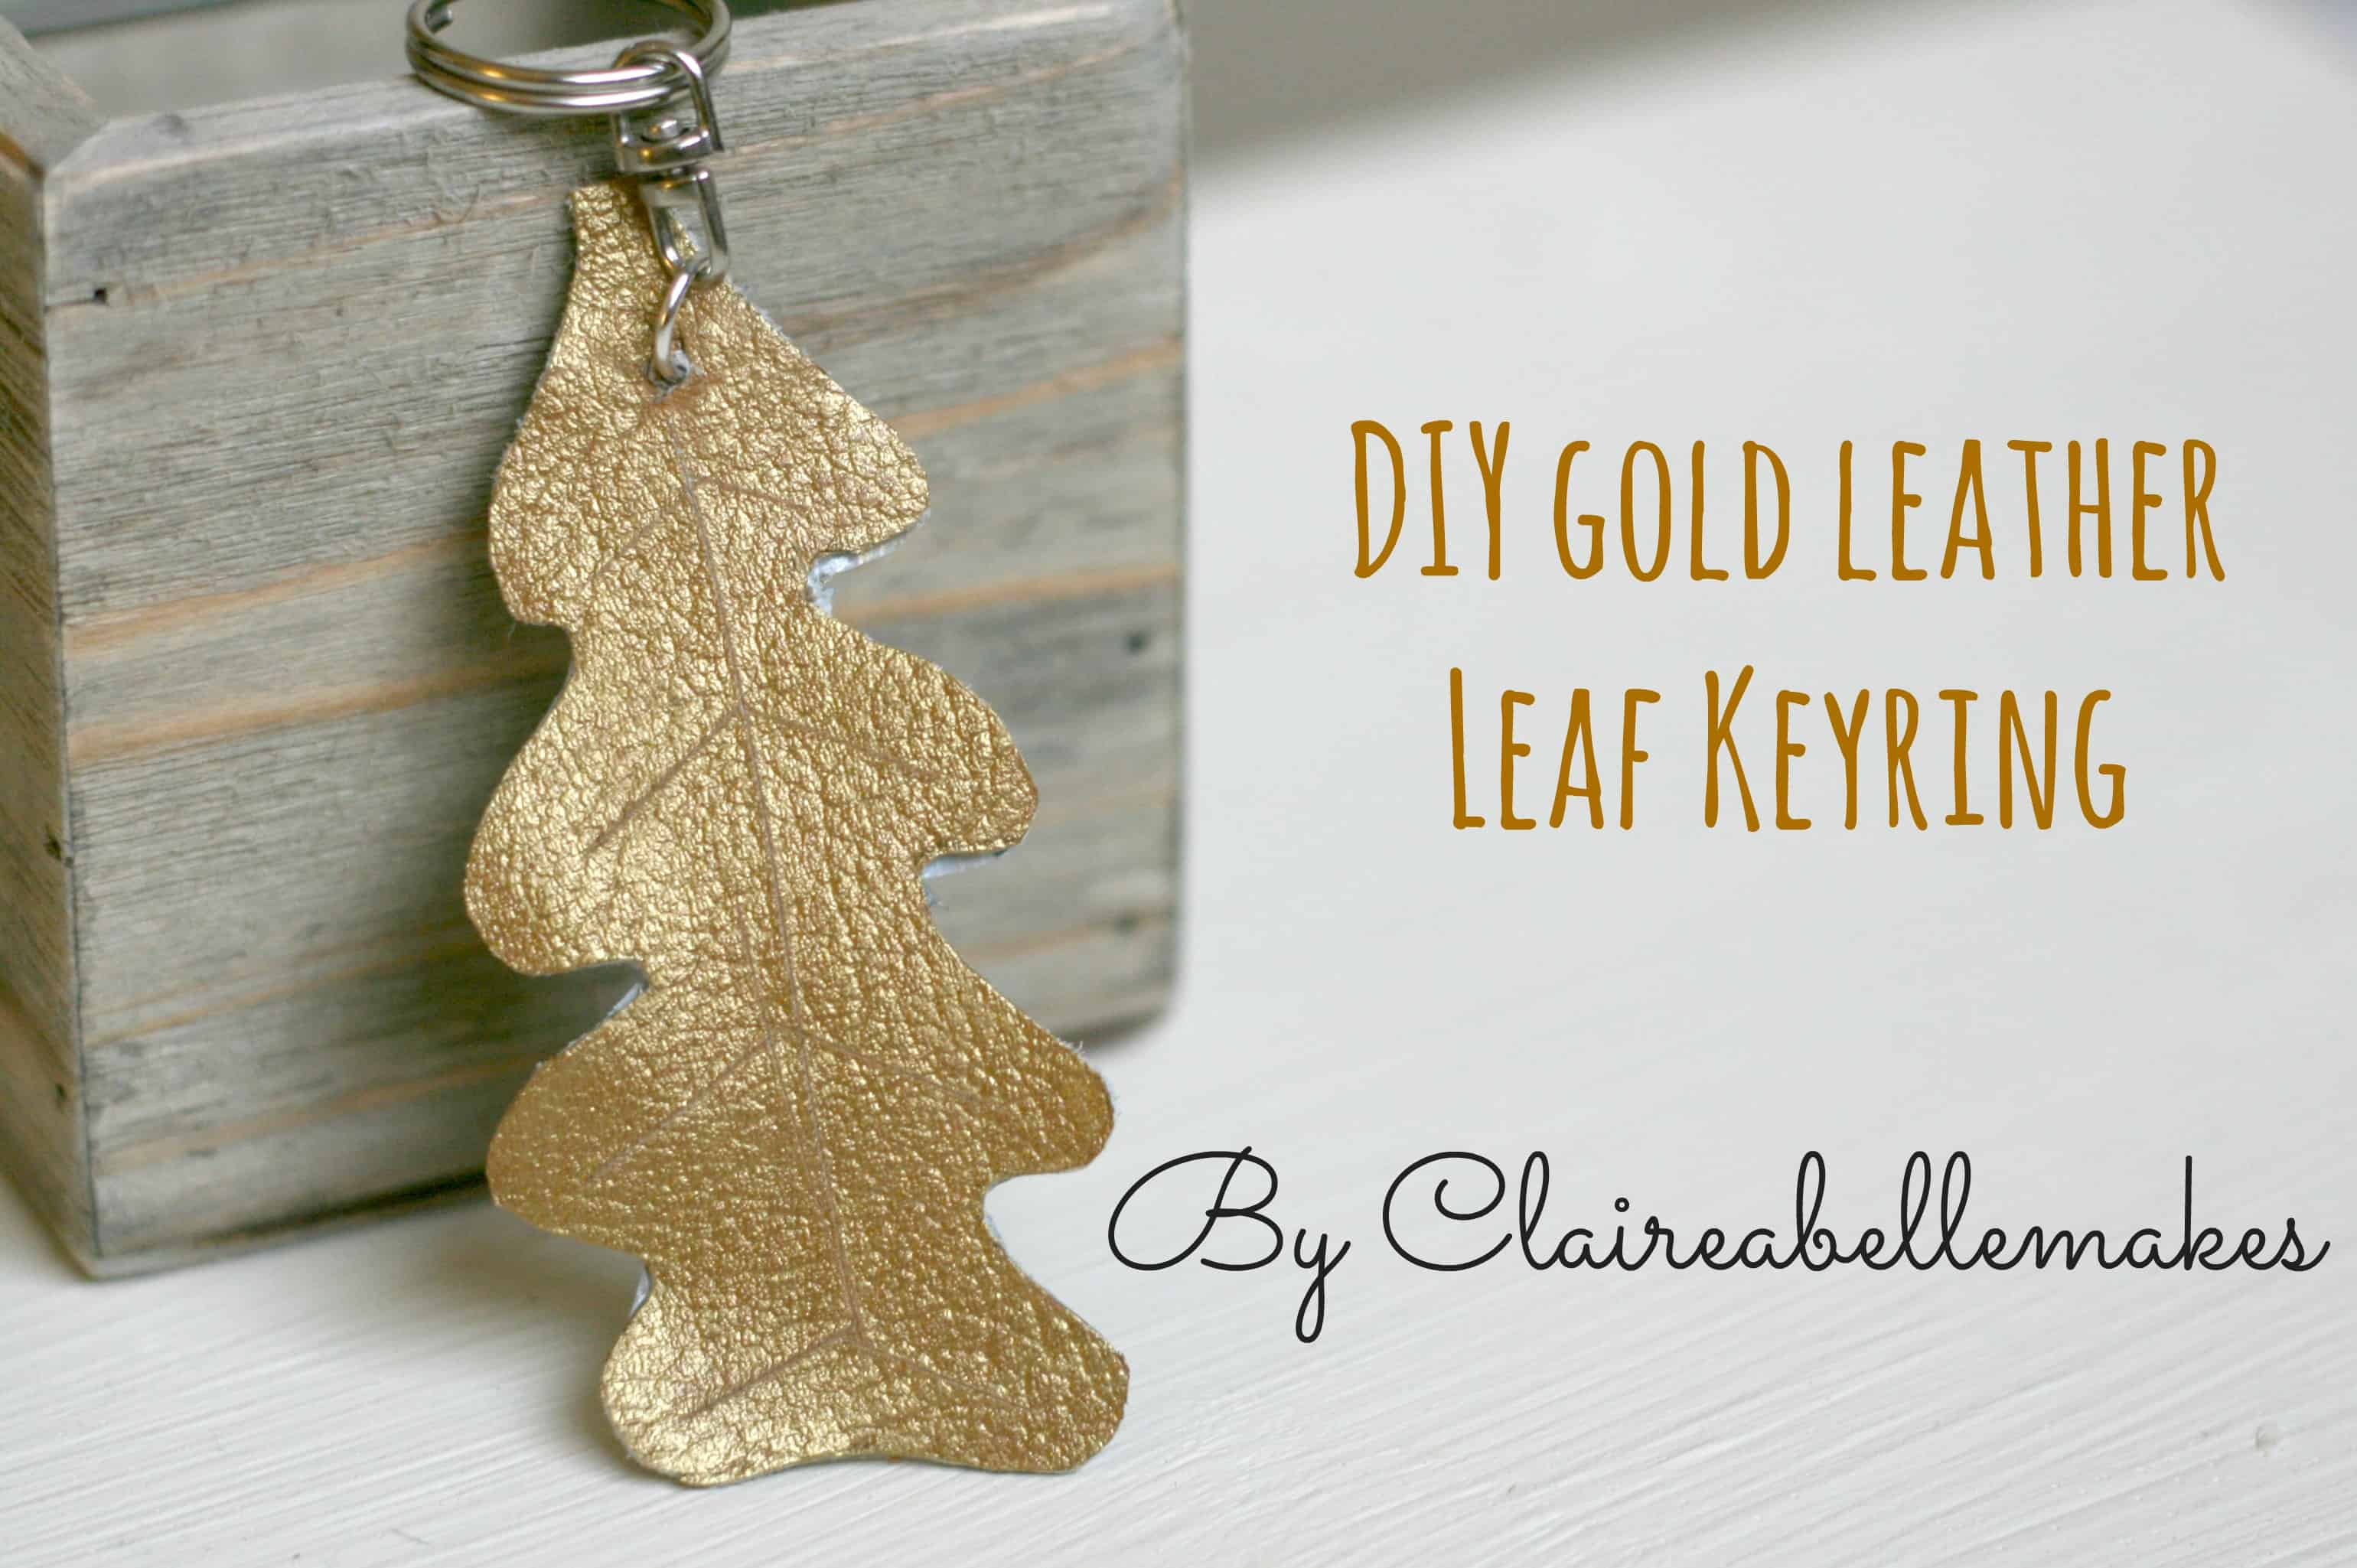 diy-gold-leather-leaf-keyring-by-claireabellemakes